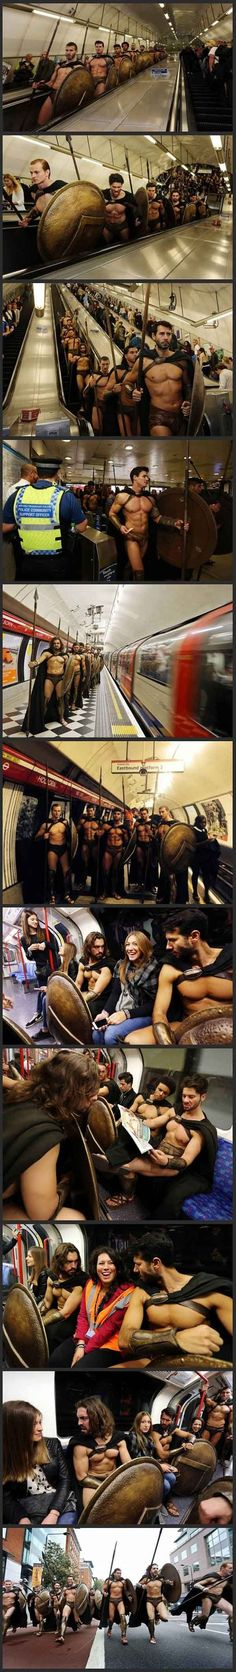 Best 300 Cosplay ever, in the London Tube